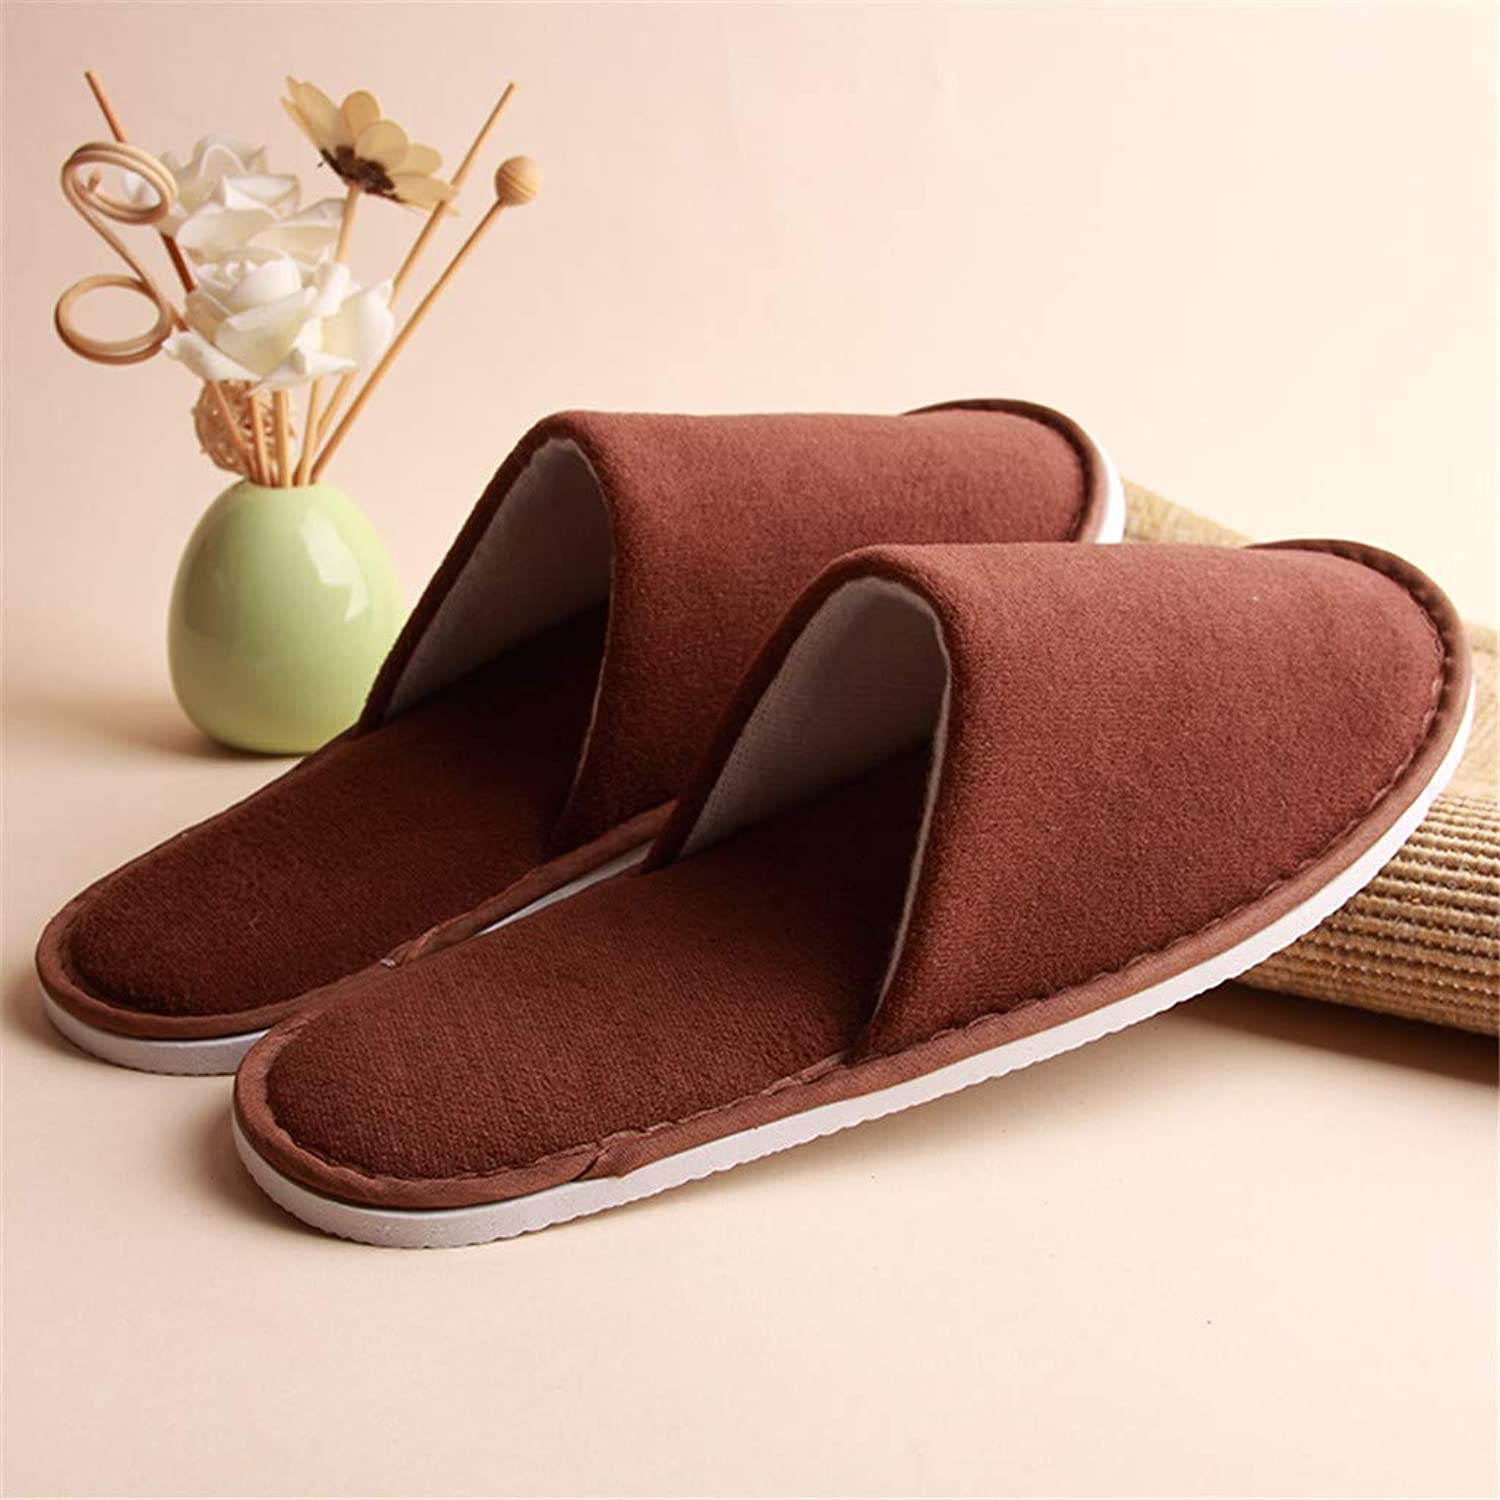 10 Pairs of Unisex Multicolor Fluffy Closed Toe Spa Slippers - One Size Fit Most Men and Women, Comfortable and Non-Slip - Perfect for Home, Hotel Or Commercial Use,Brown